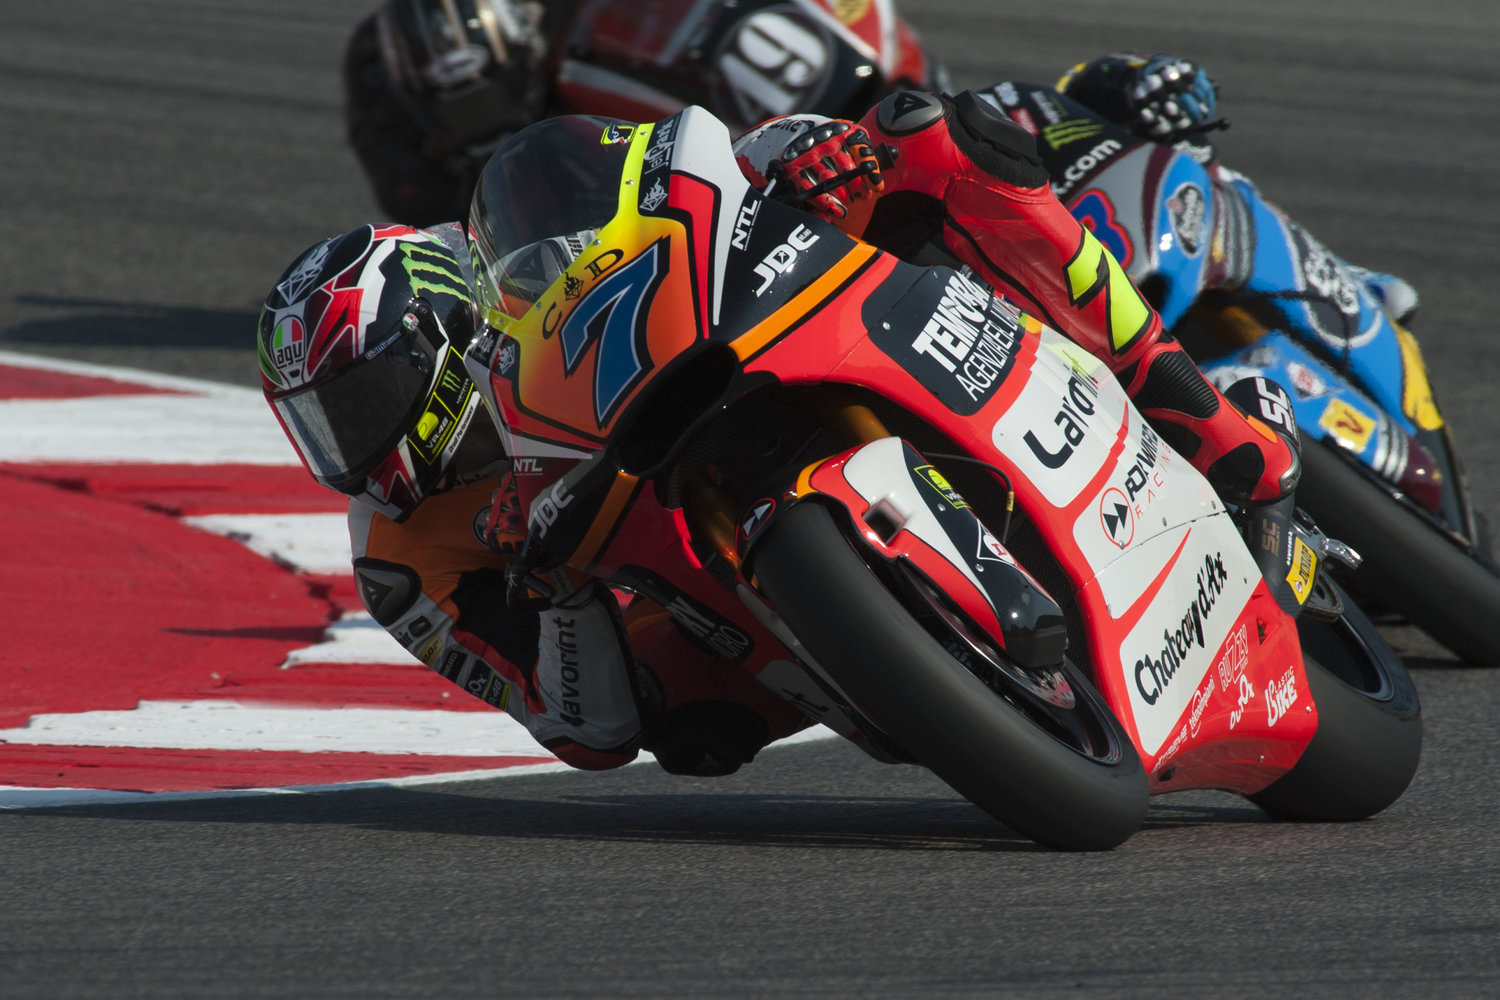 Baldassarri third in Friday's practice at home circuit